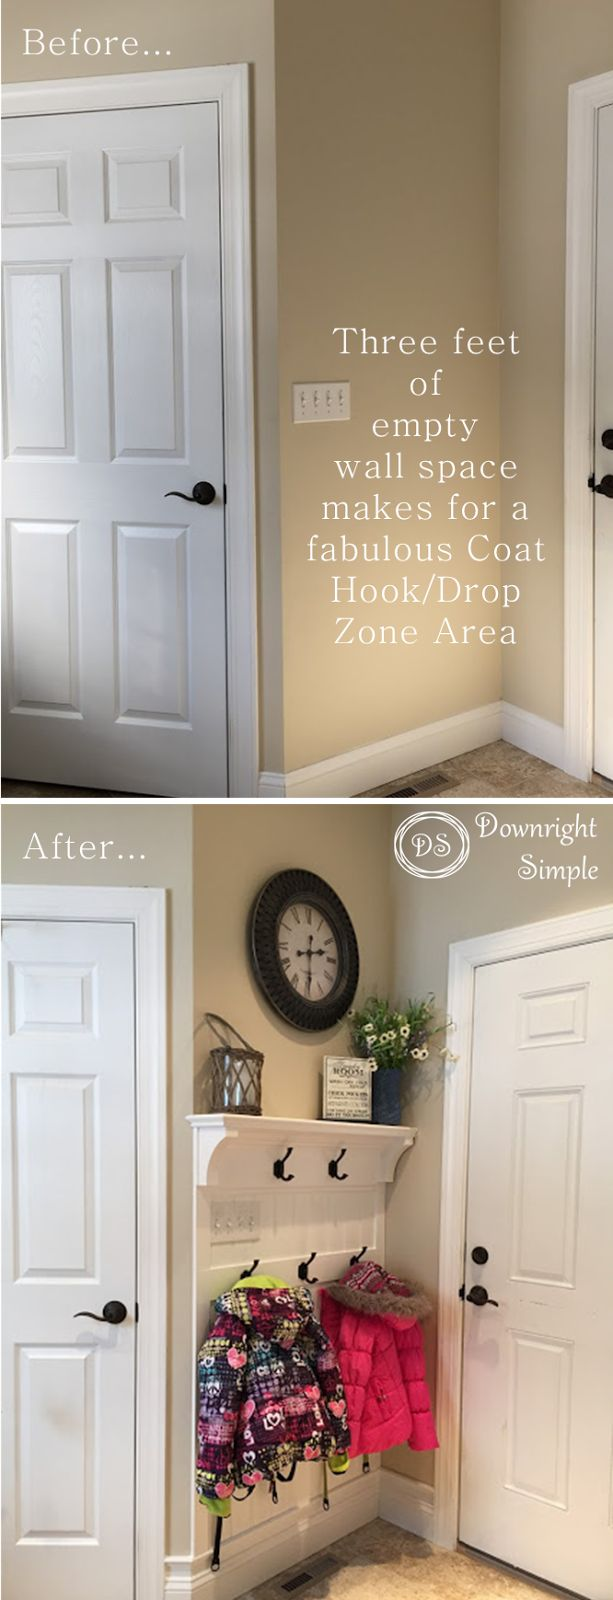 downright simple mudroom entryway maximizing a small space entryway ideashallway ideasentryway storagesmall entryway